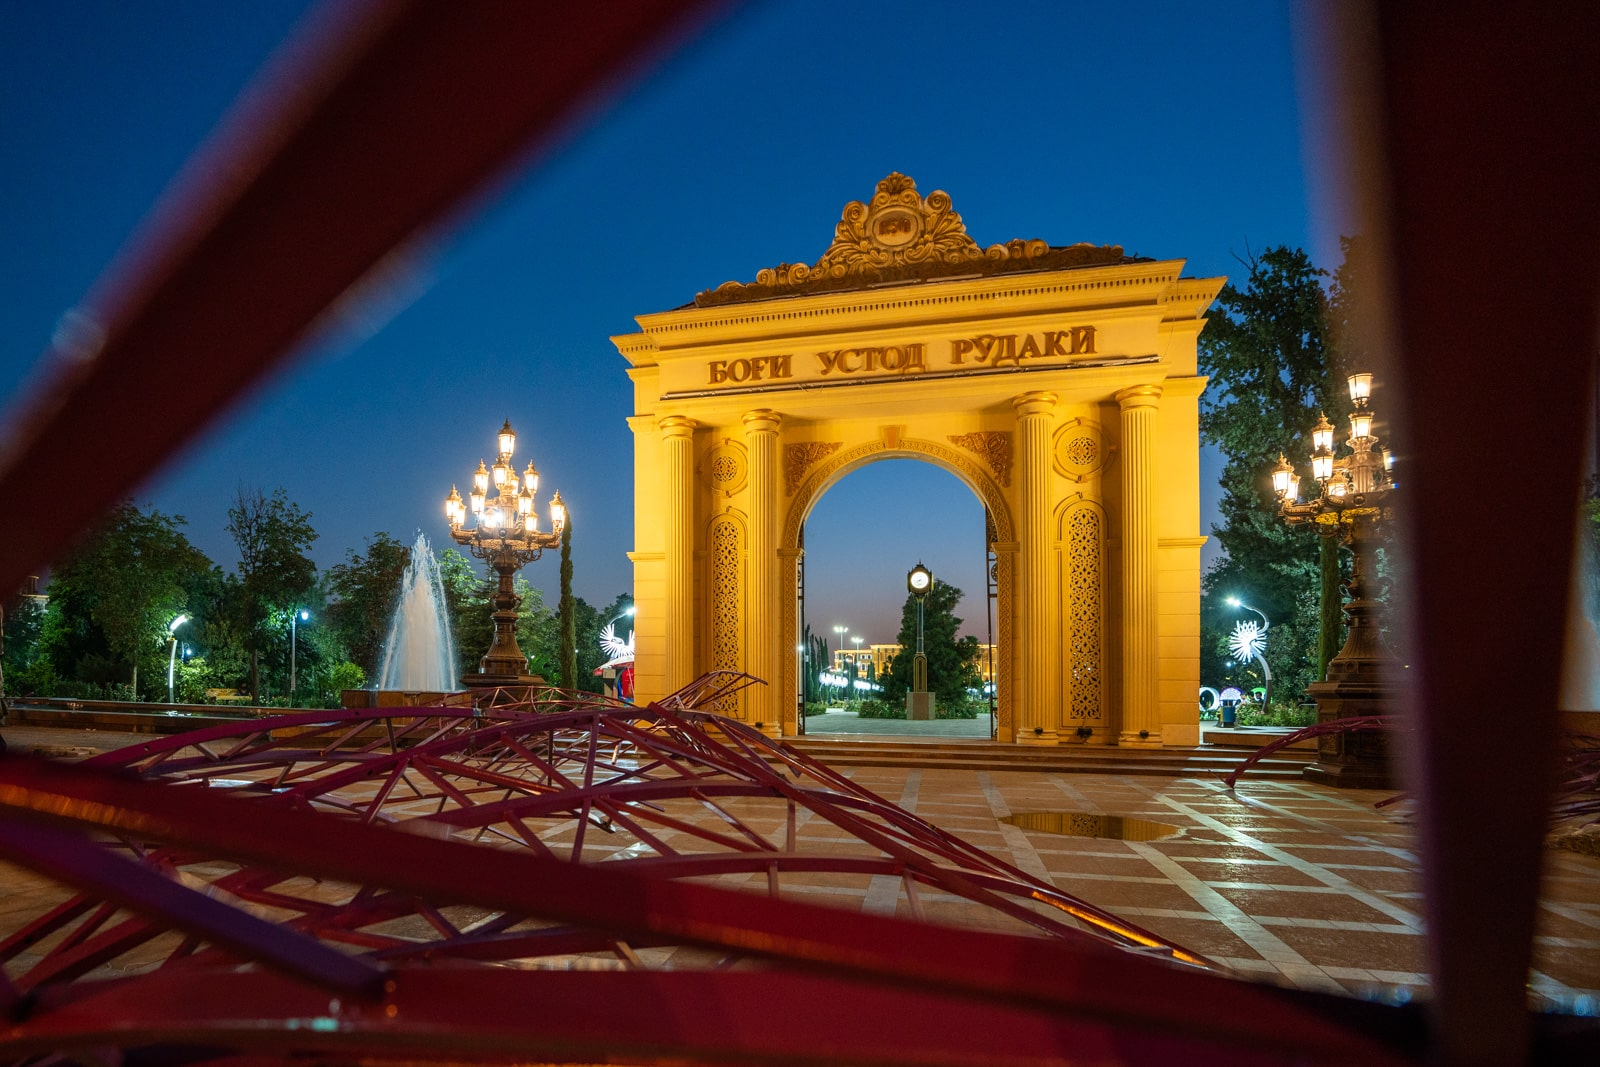 Rudaki part entrance at night in Dushanbe, Tajikistan